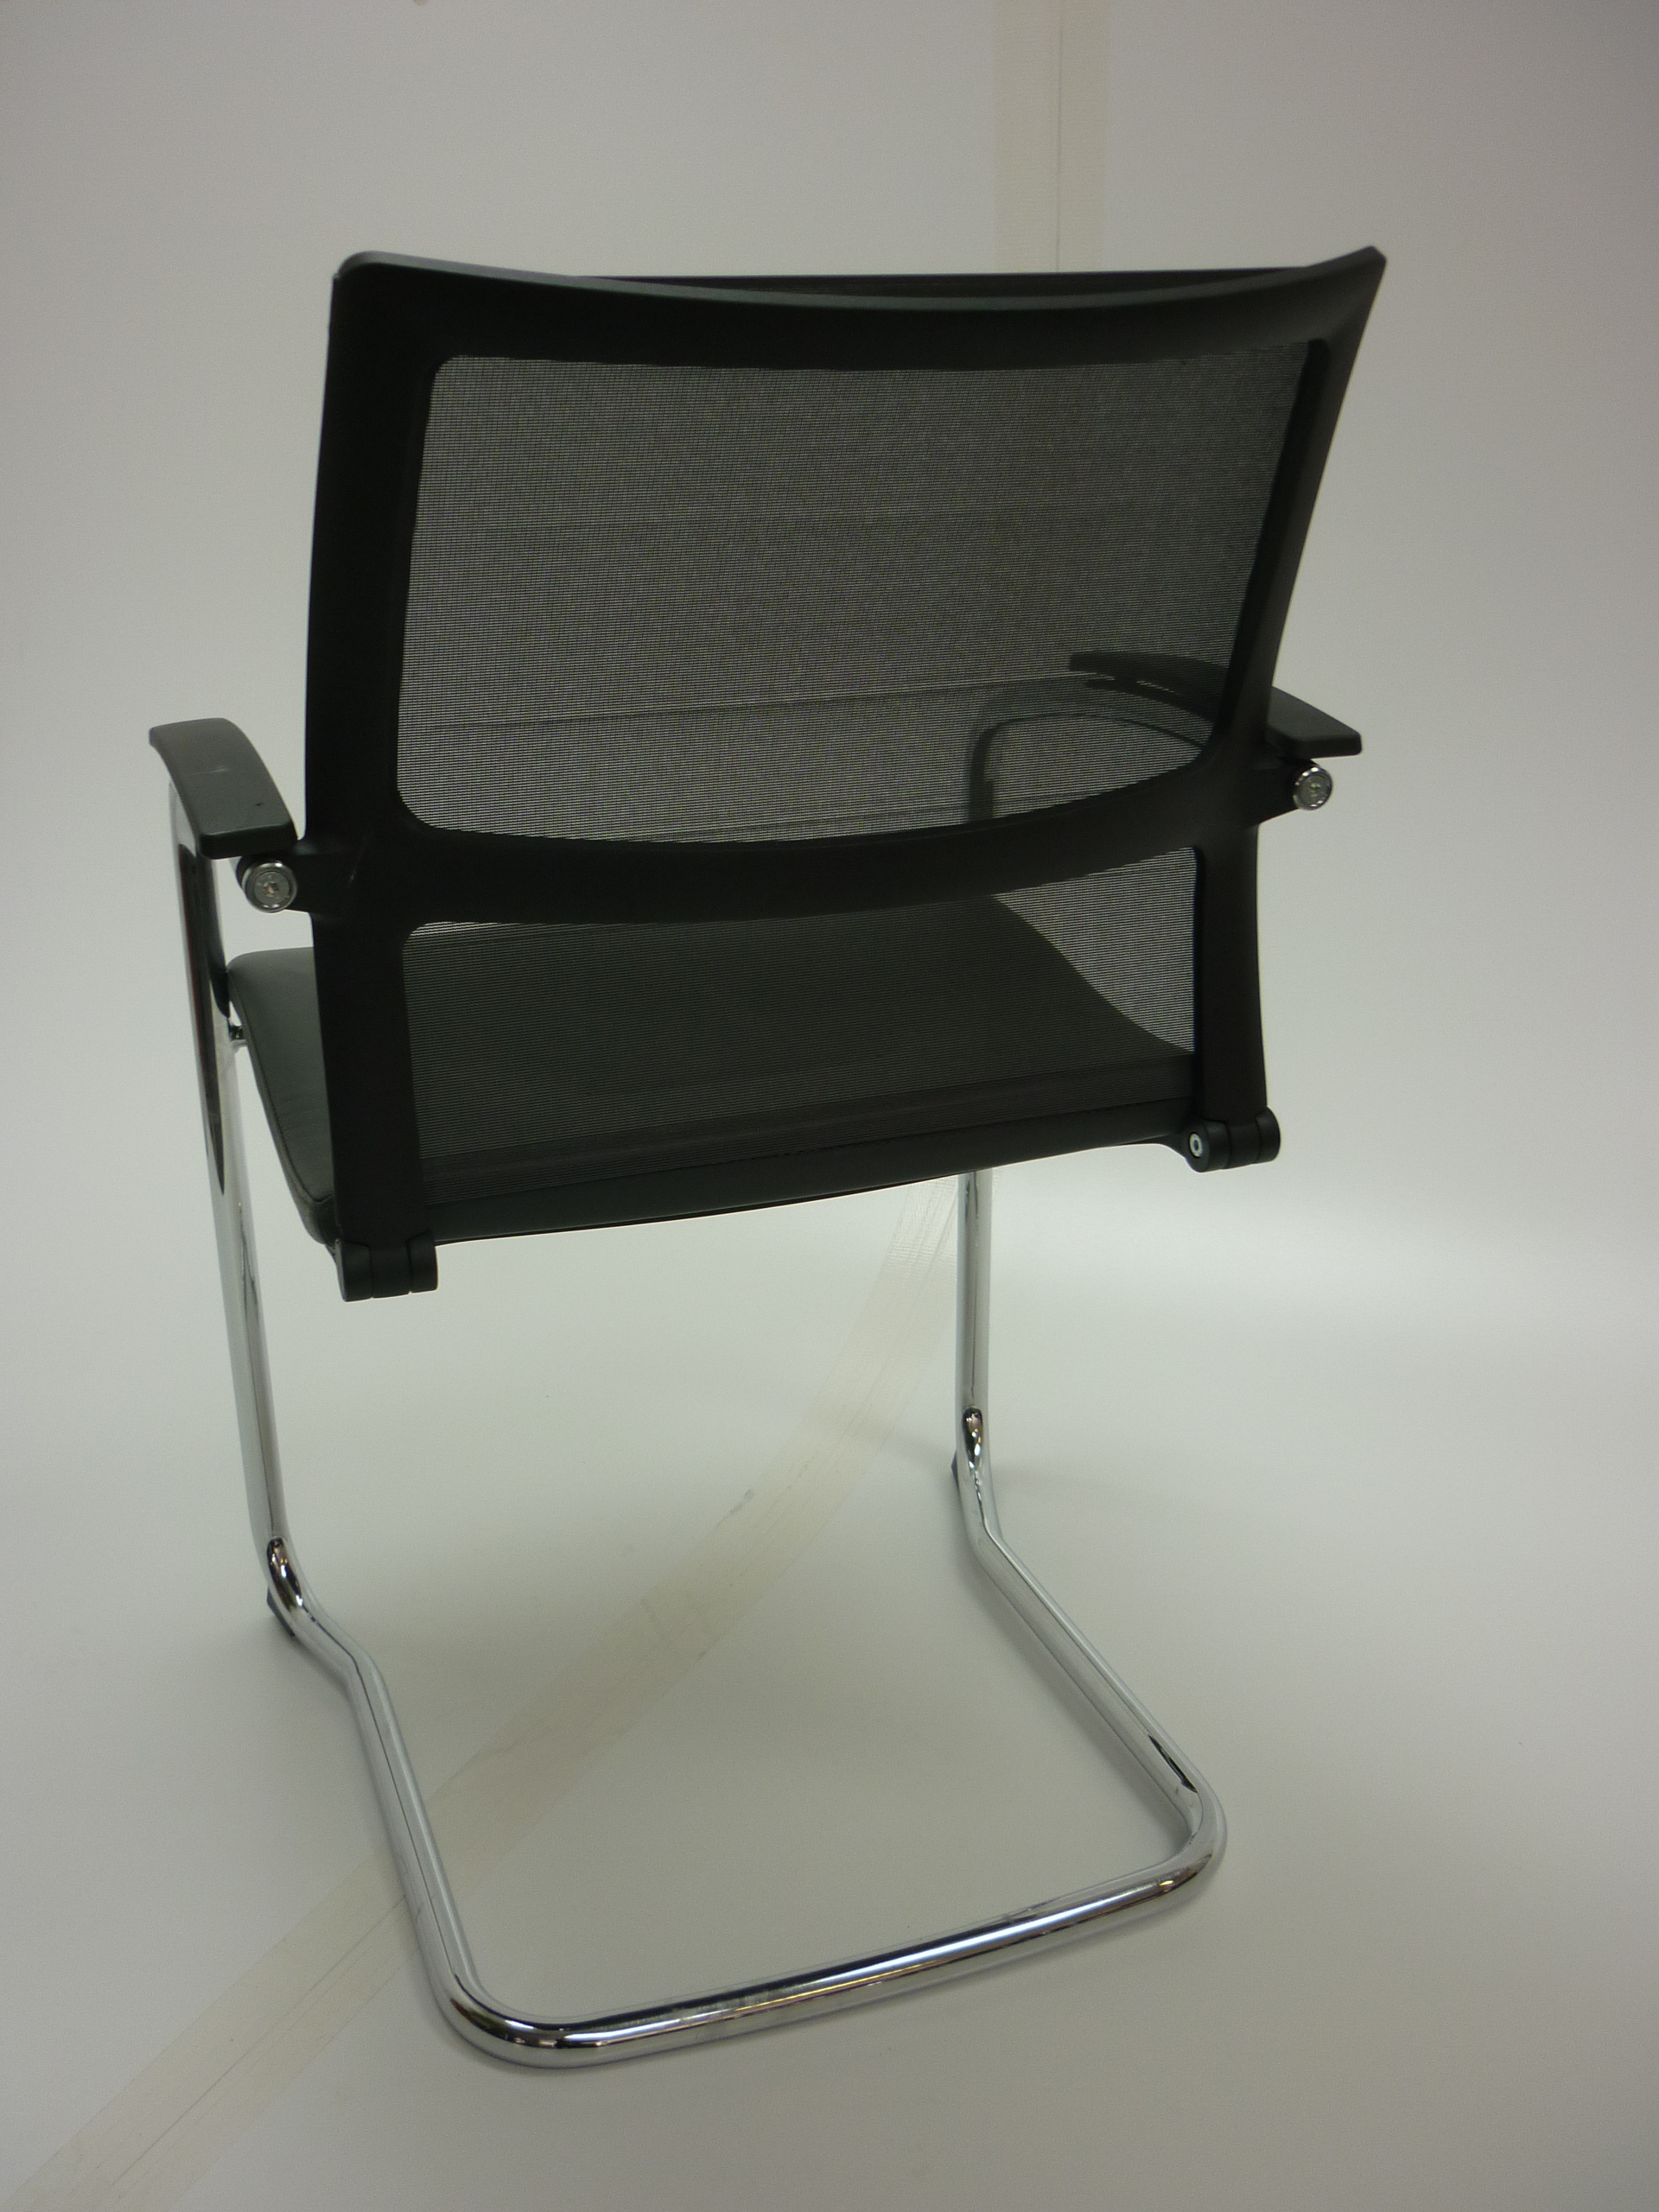 Sedus Open 233 meeting chair